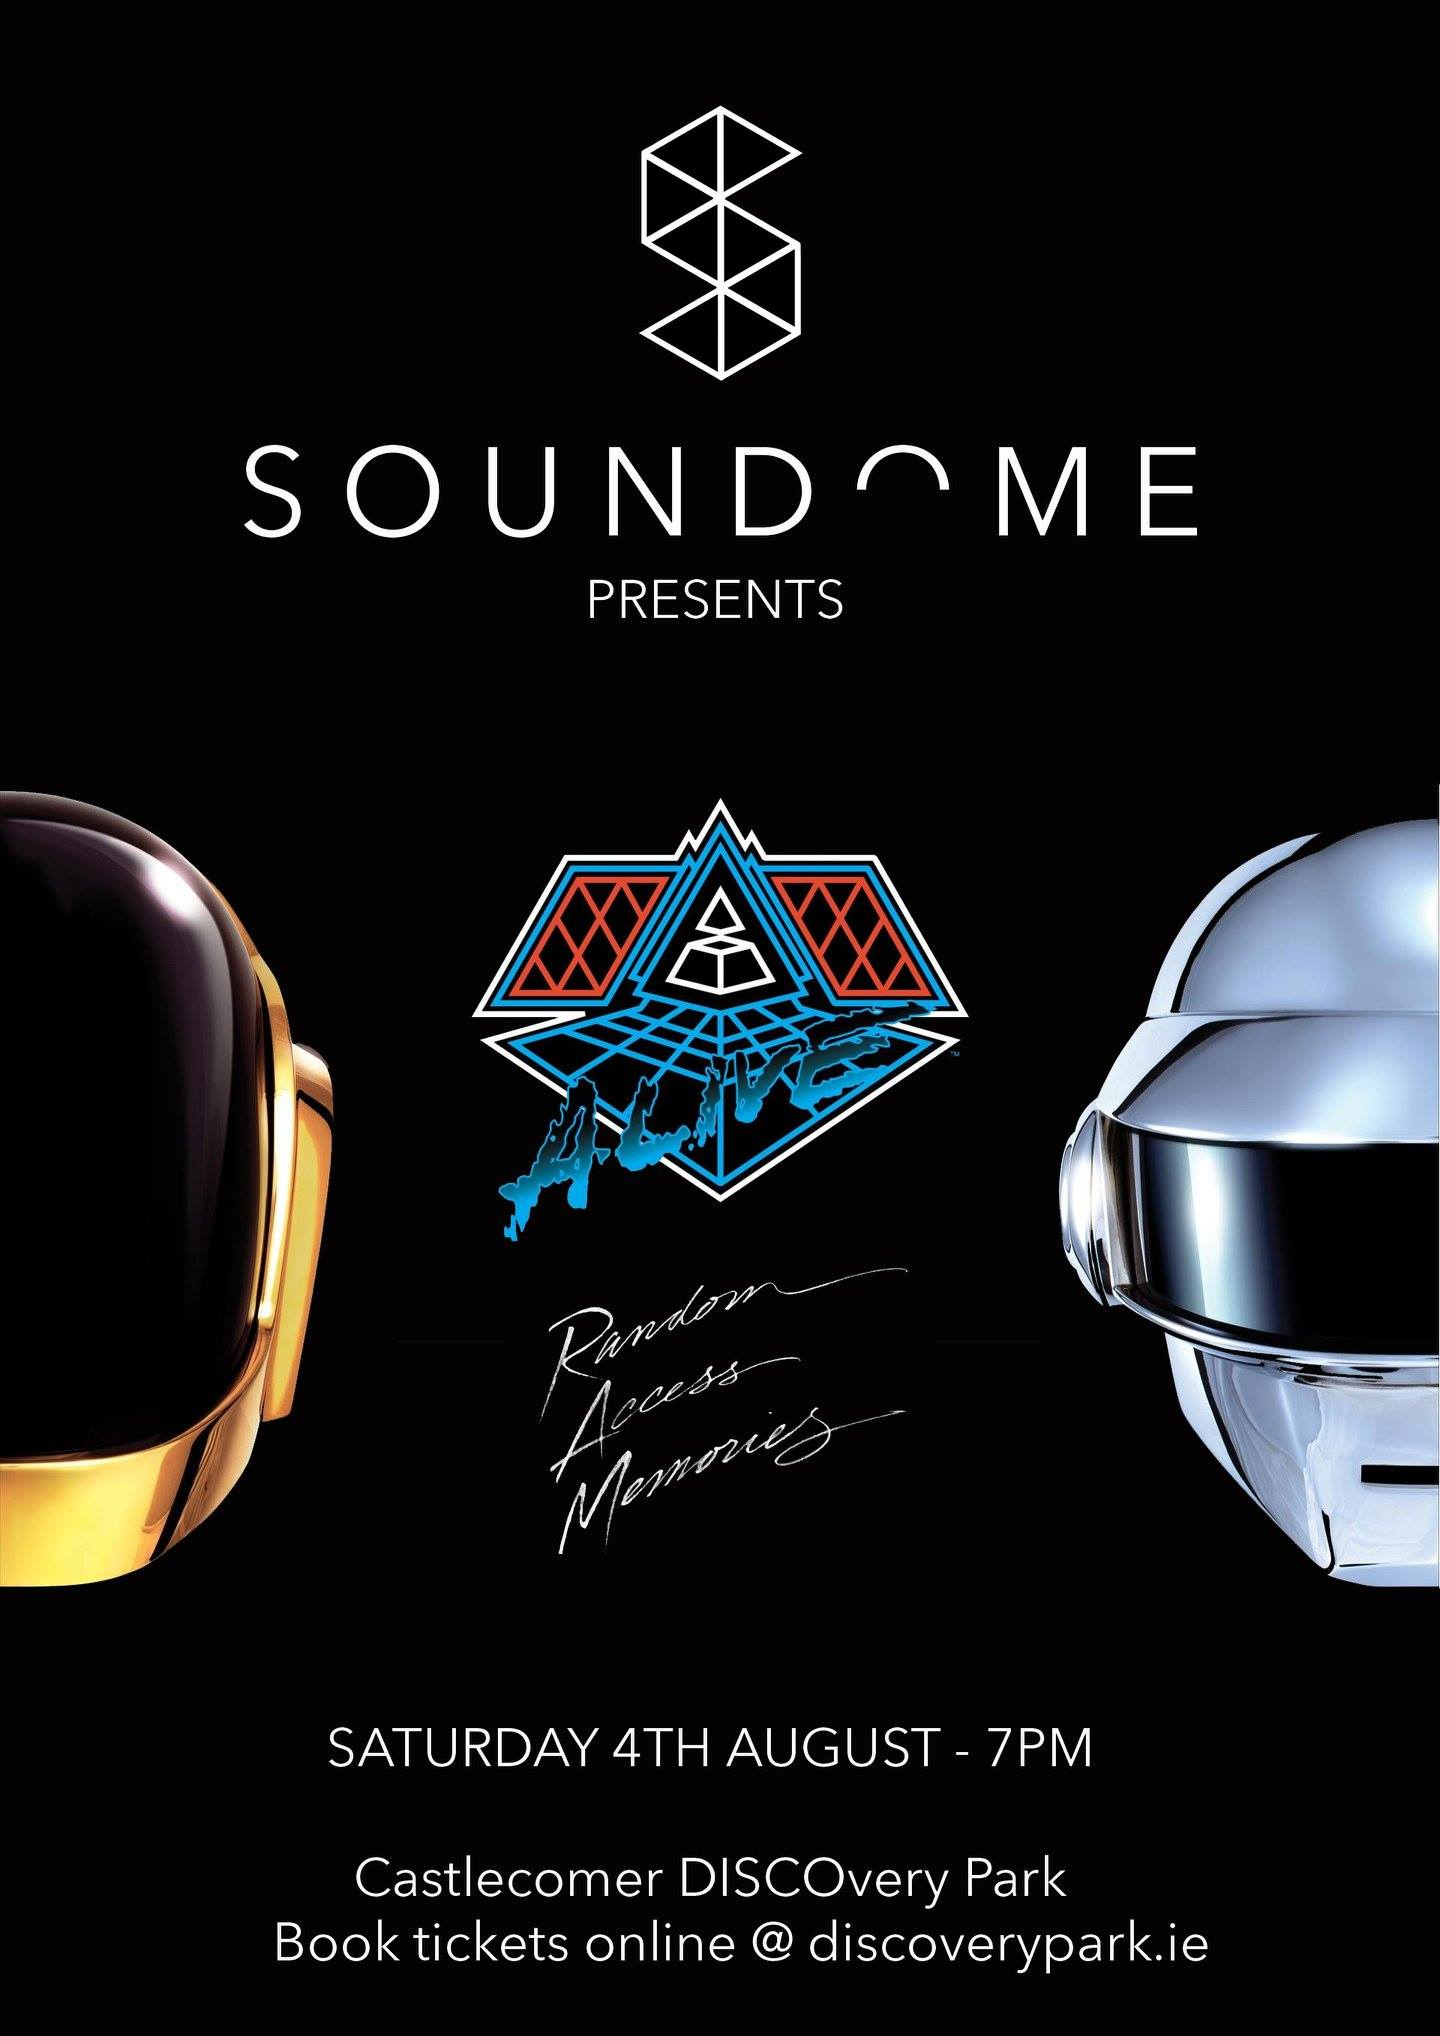 Daft Punk Soundome Poster